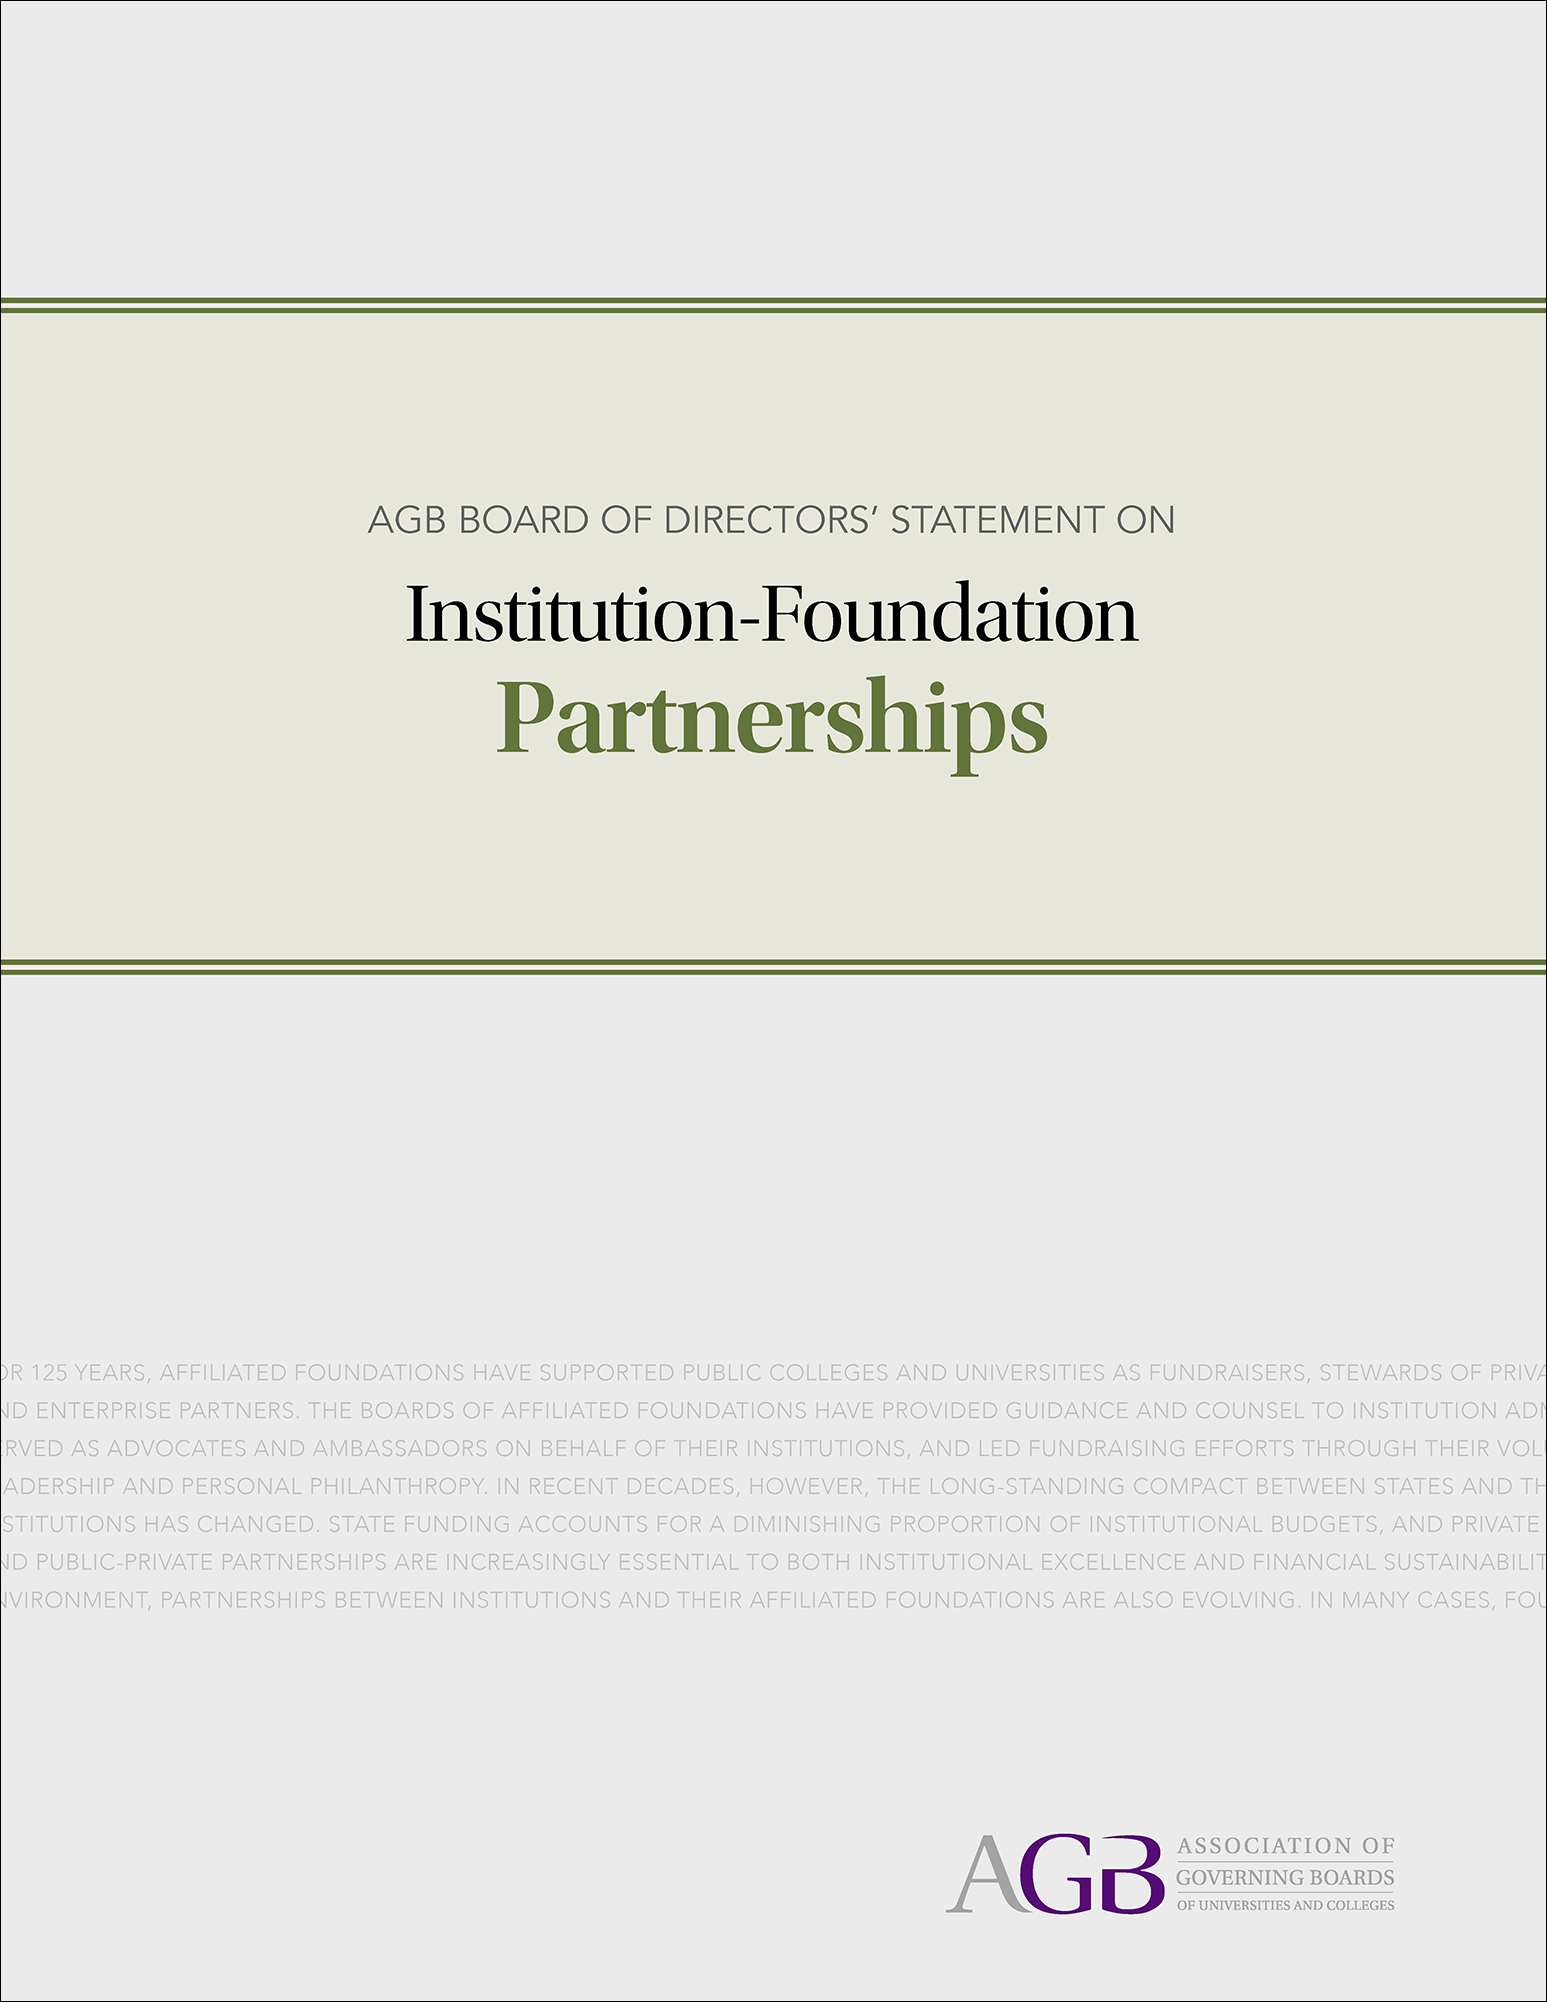 AGB Board of Directors' Statement on Institution-Foundation Partnerships